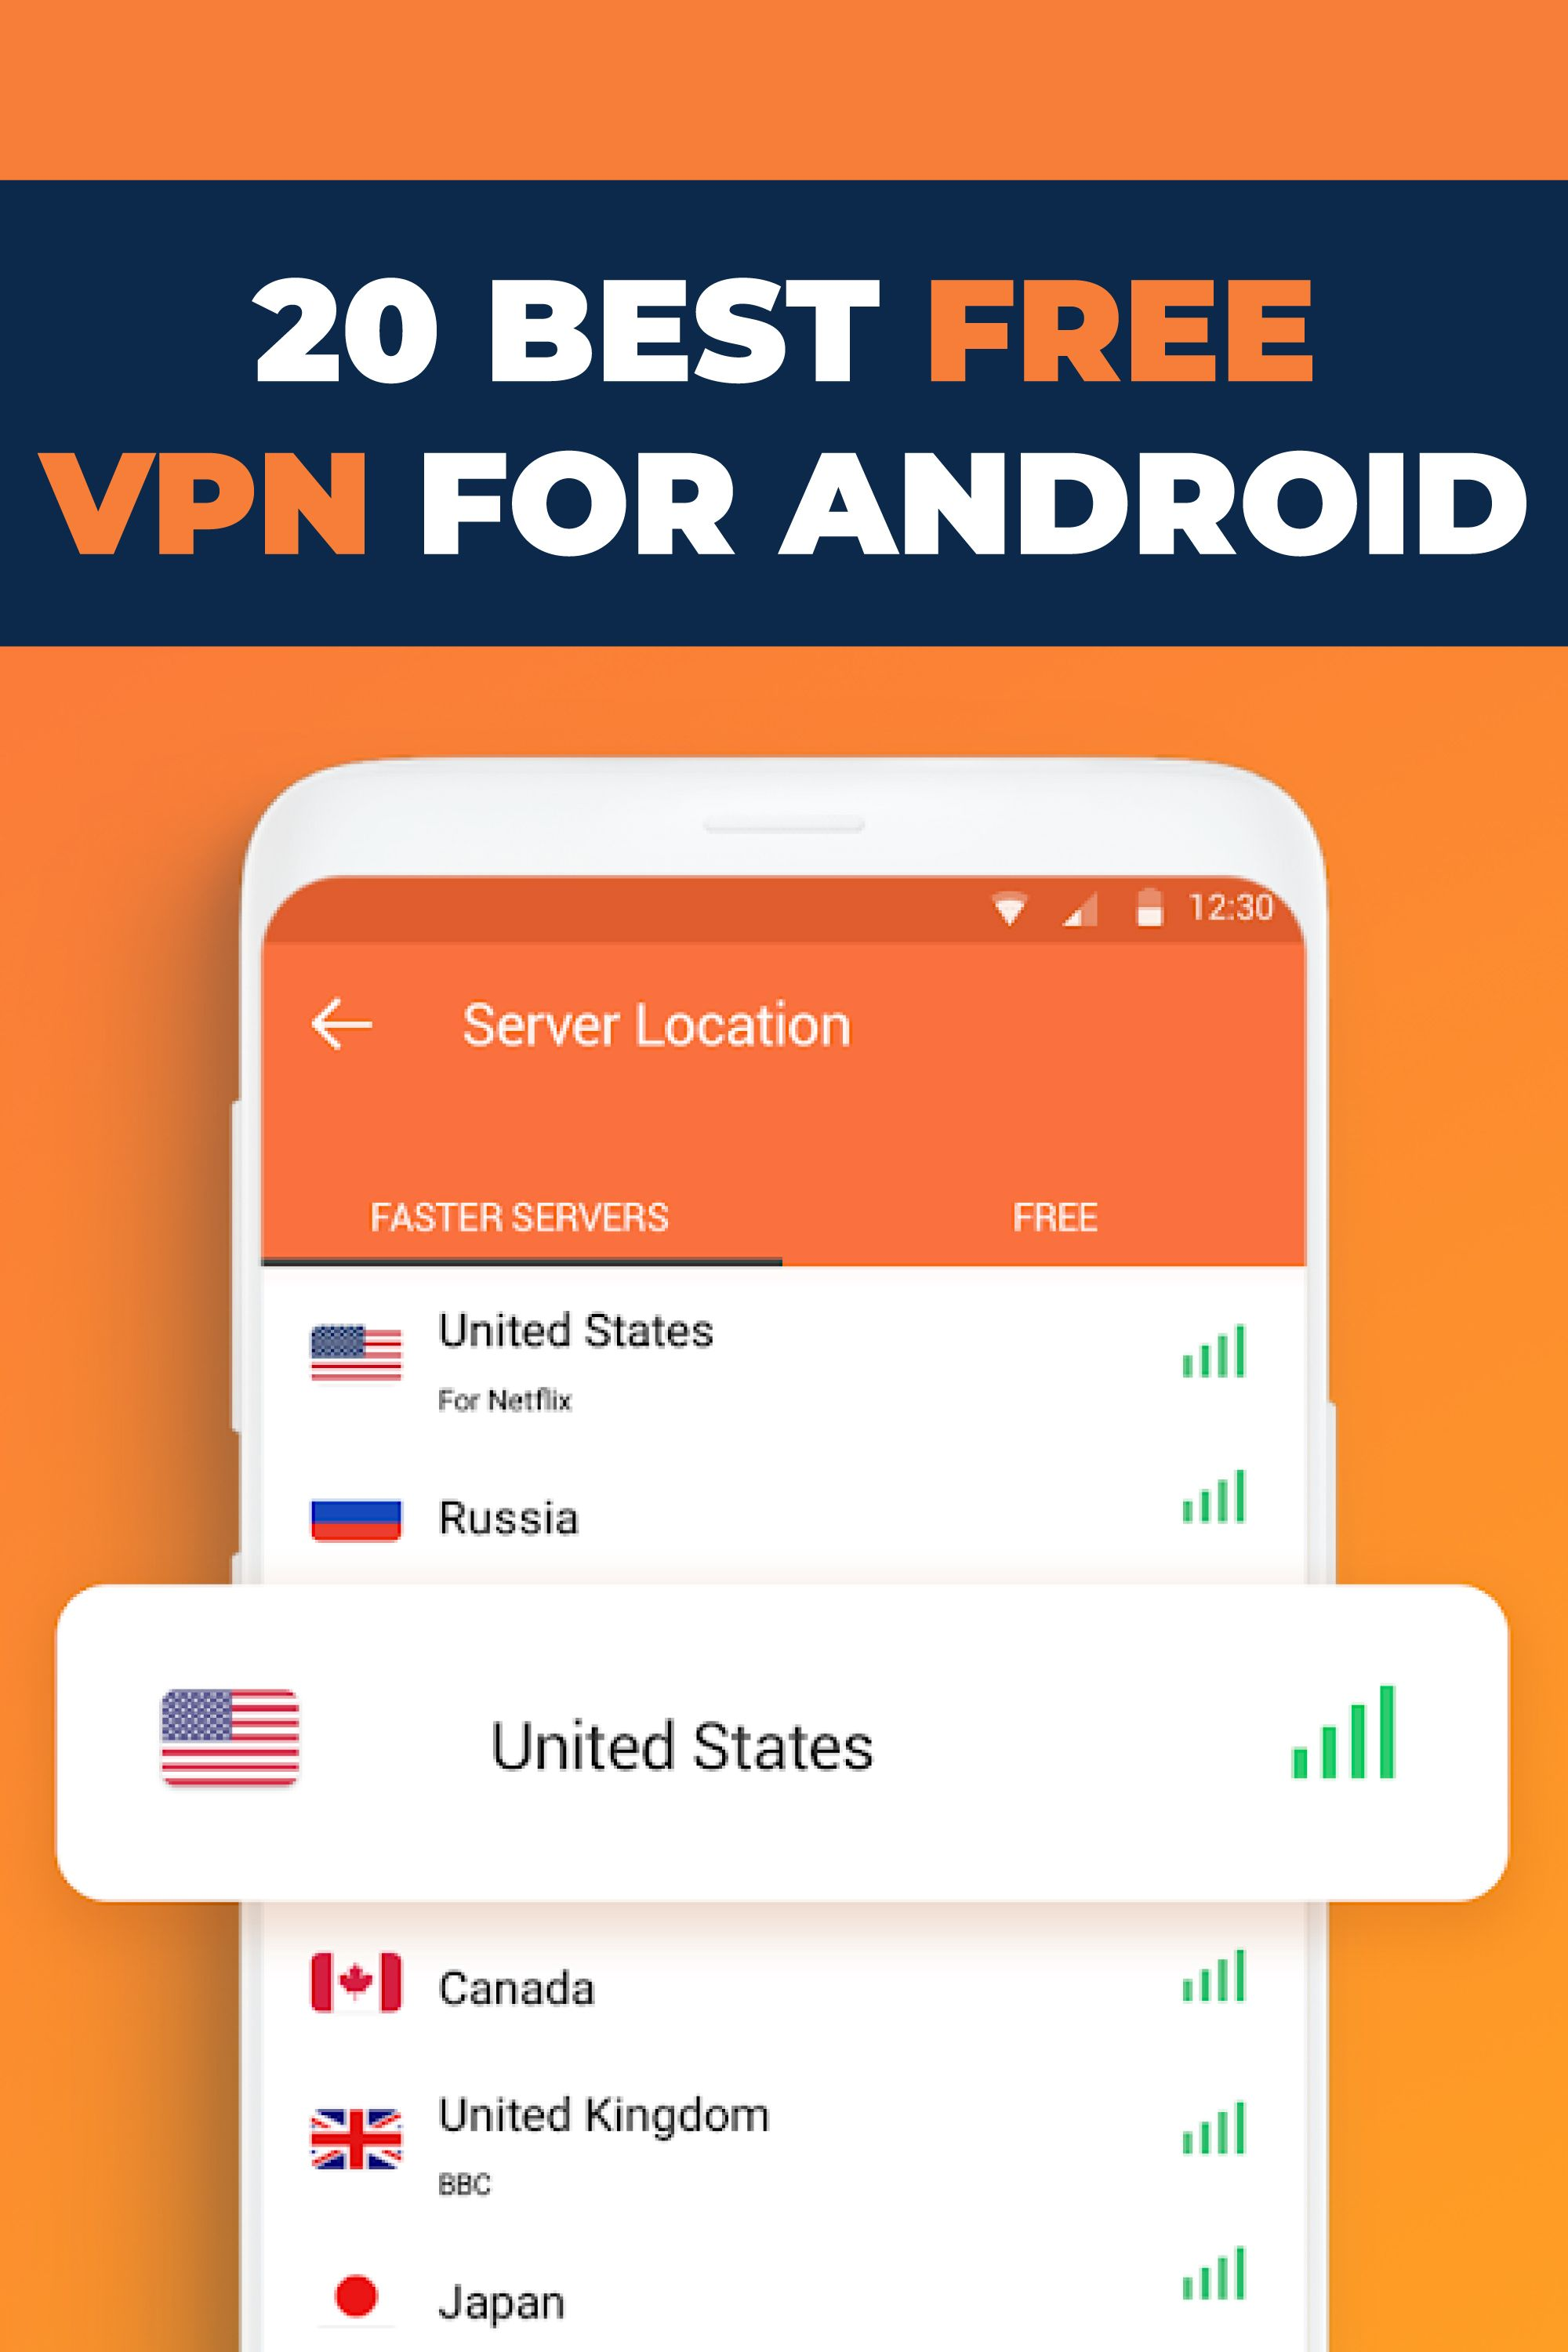 What Is The Best Free Vpn For Android